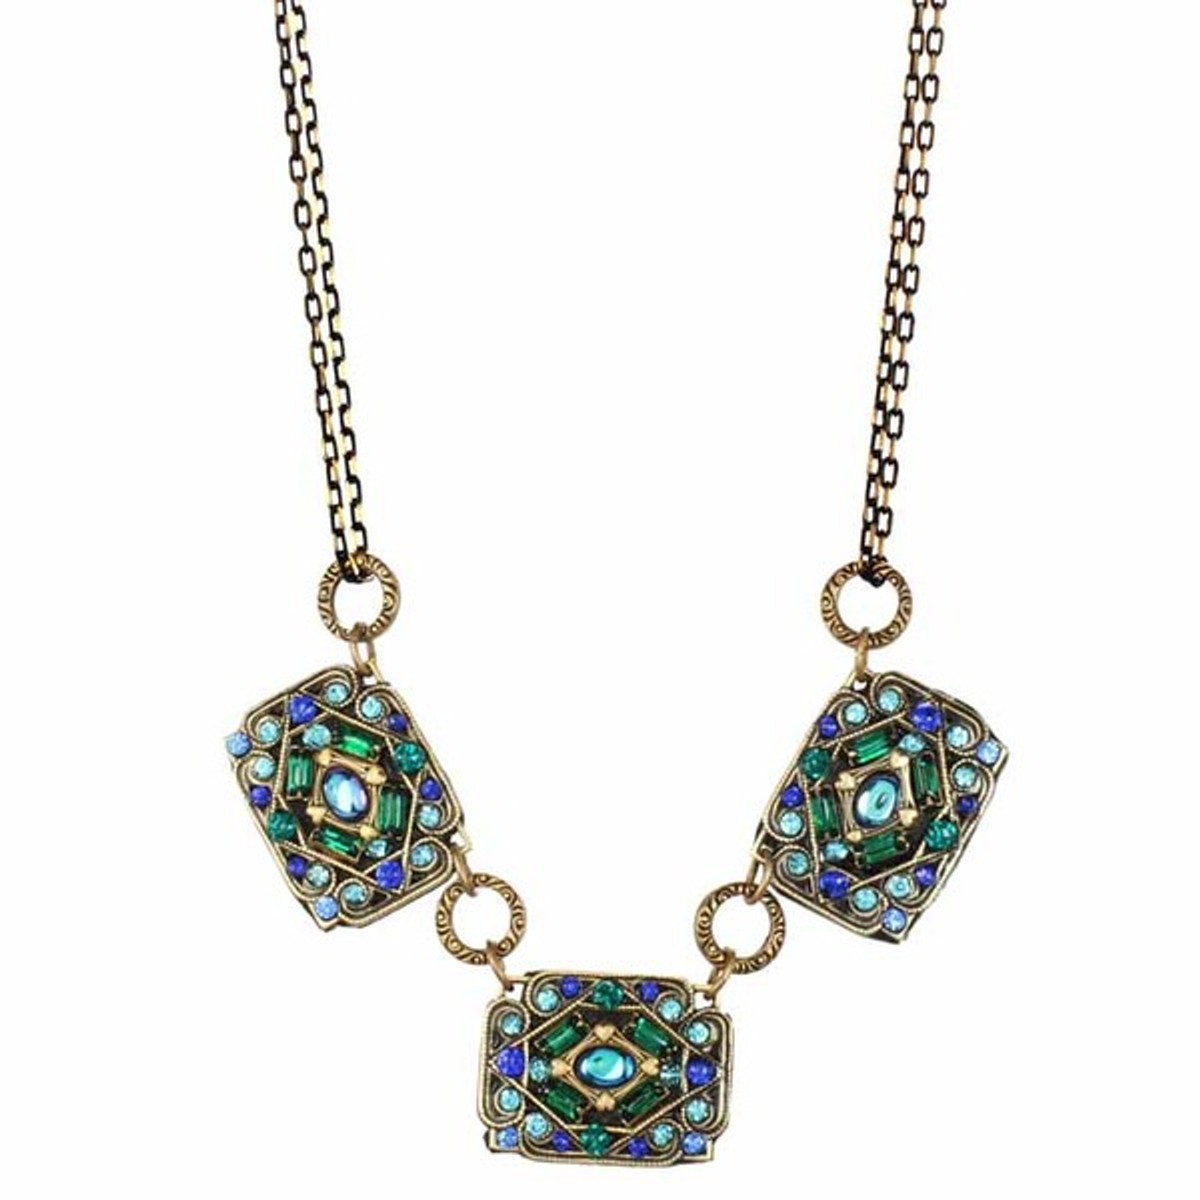 Peacock Necklace By Michal Golan - N3280